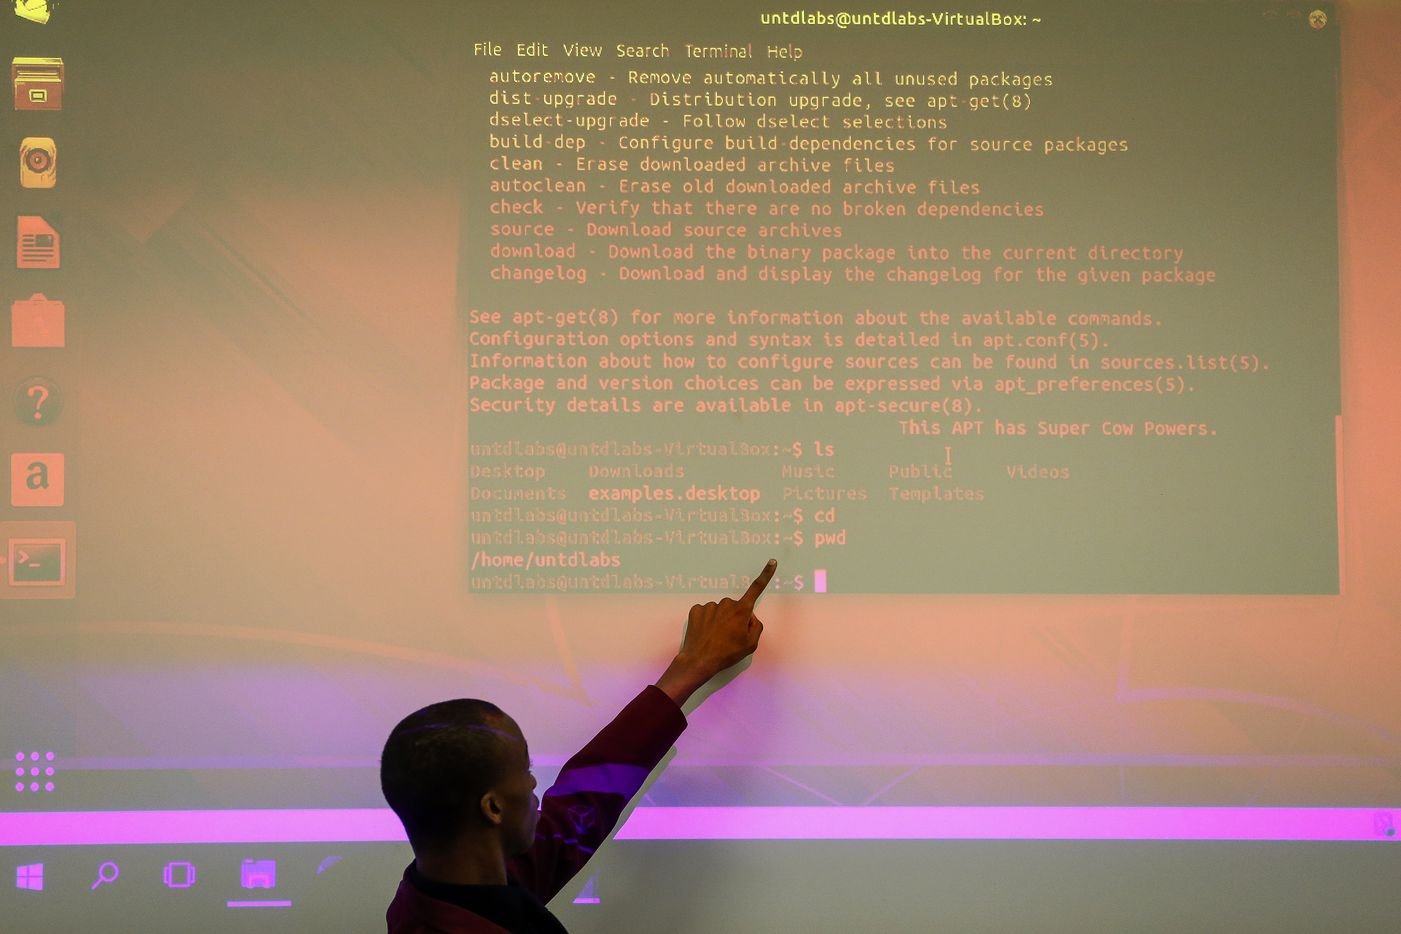 Jaylon Miller looks delivers a presentation during an computer operating systems class at the University of North Texas at Dallas on Wednesday, Jan. 29, 2020 in Dallas.